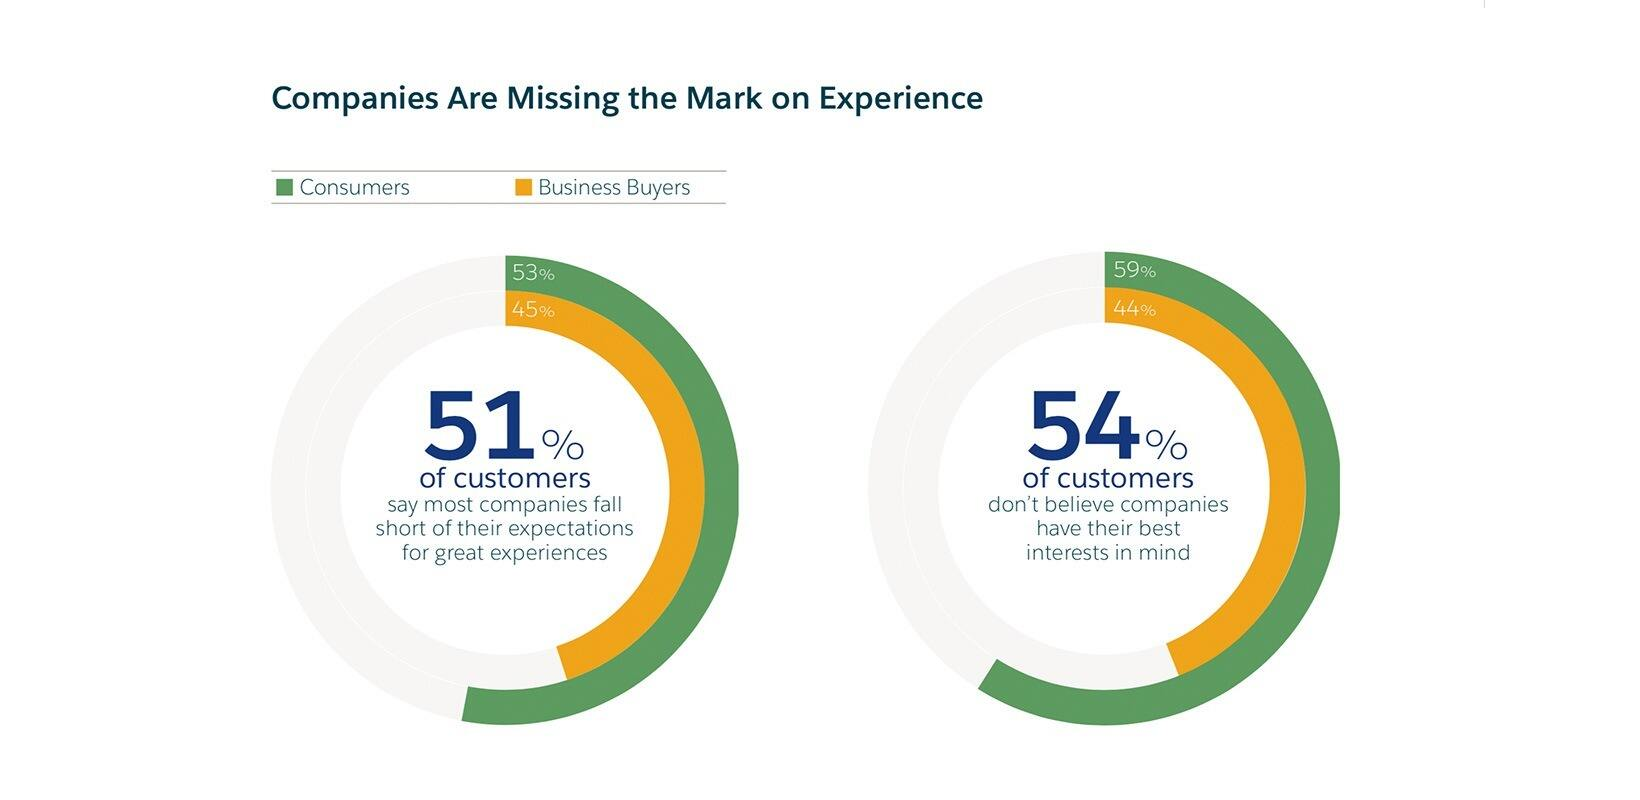 Most B2C and B2B companies are missing the mark on personalization